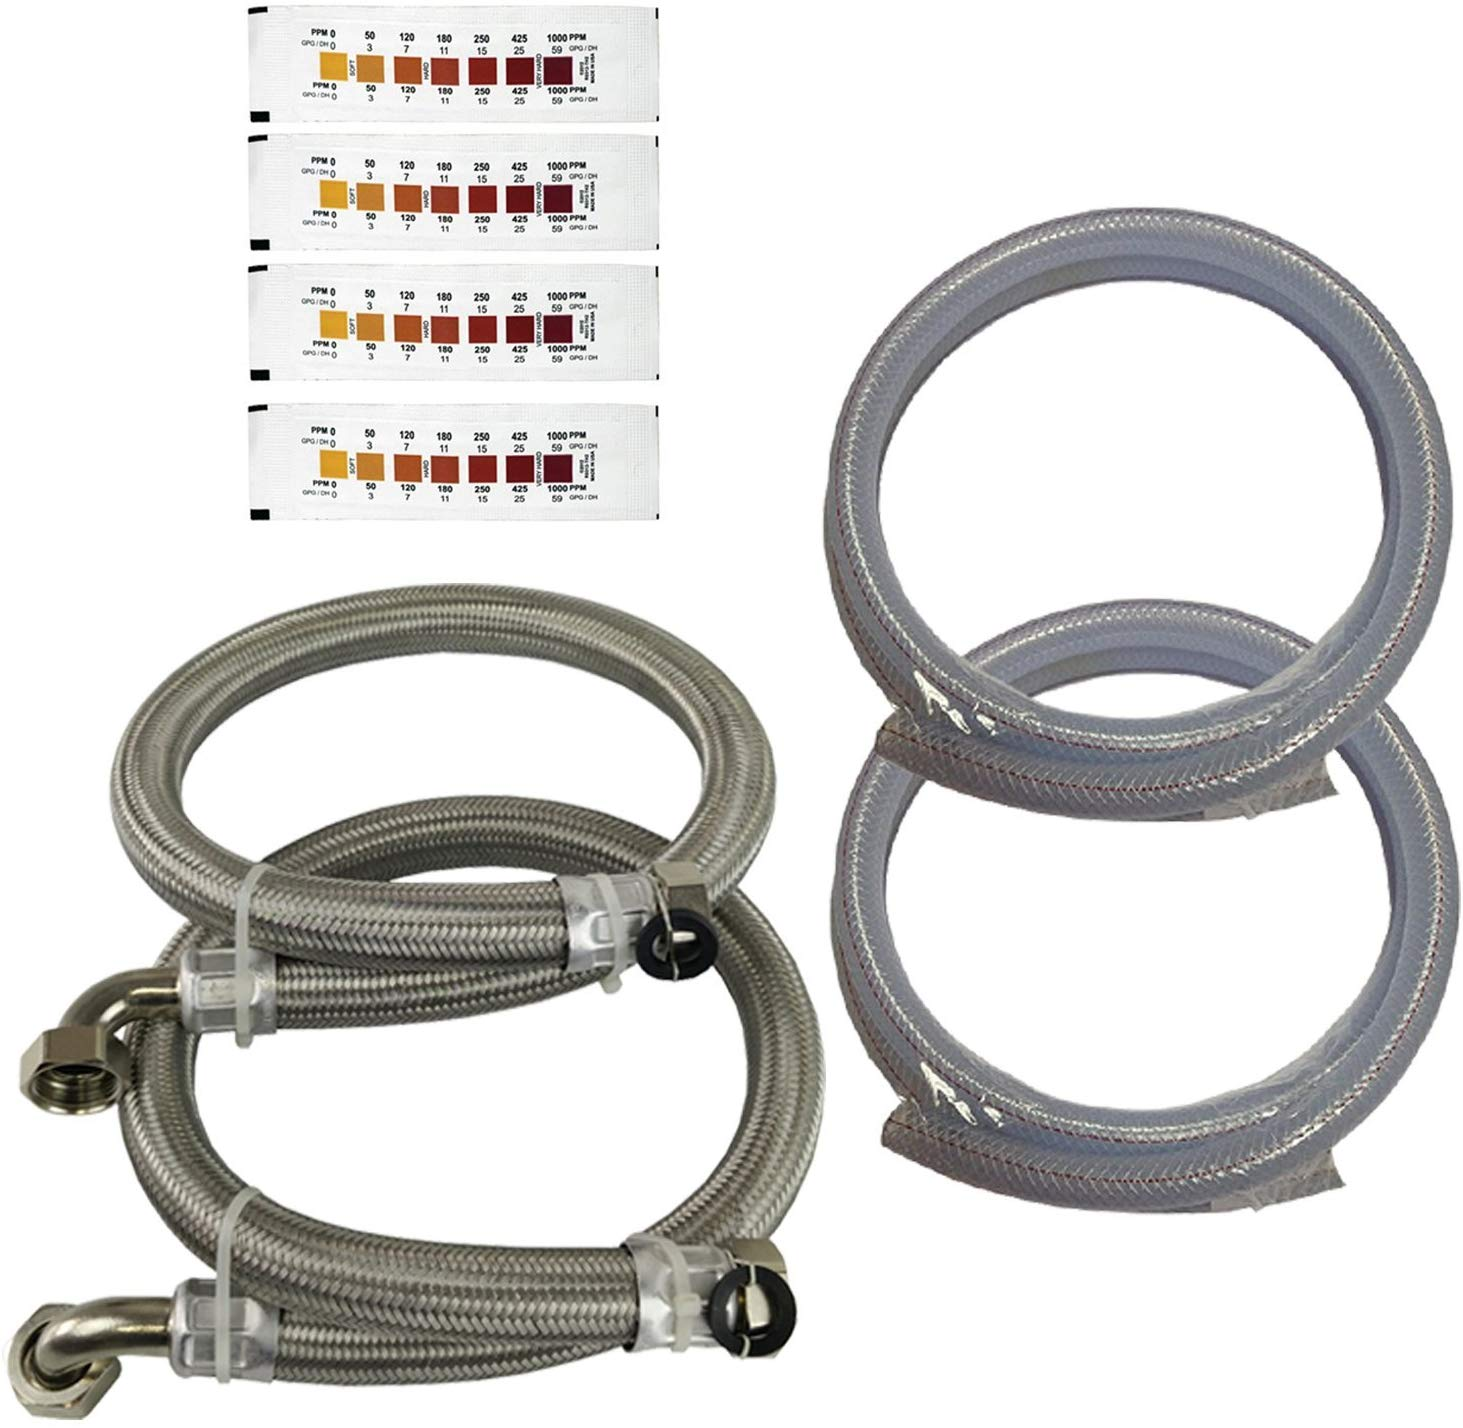 Water Softener Install Kit